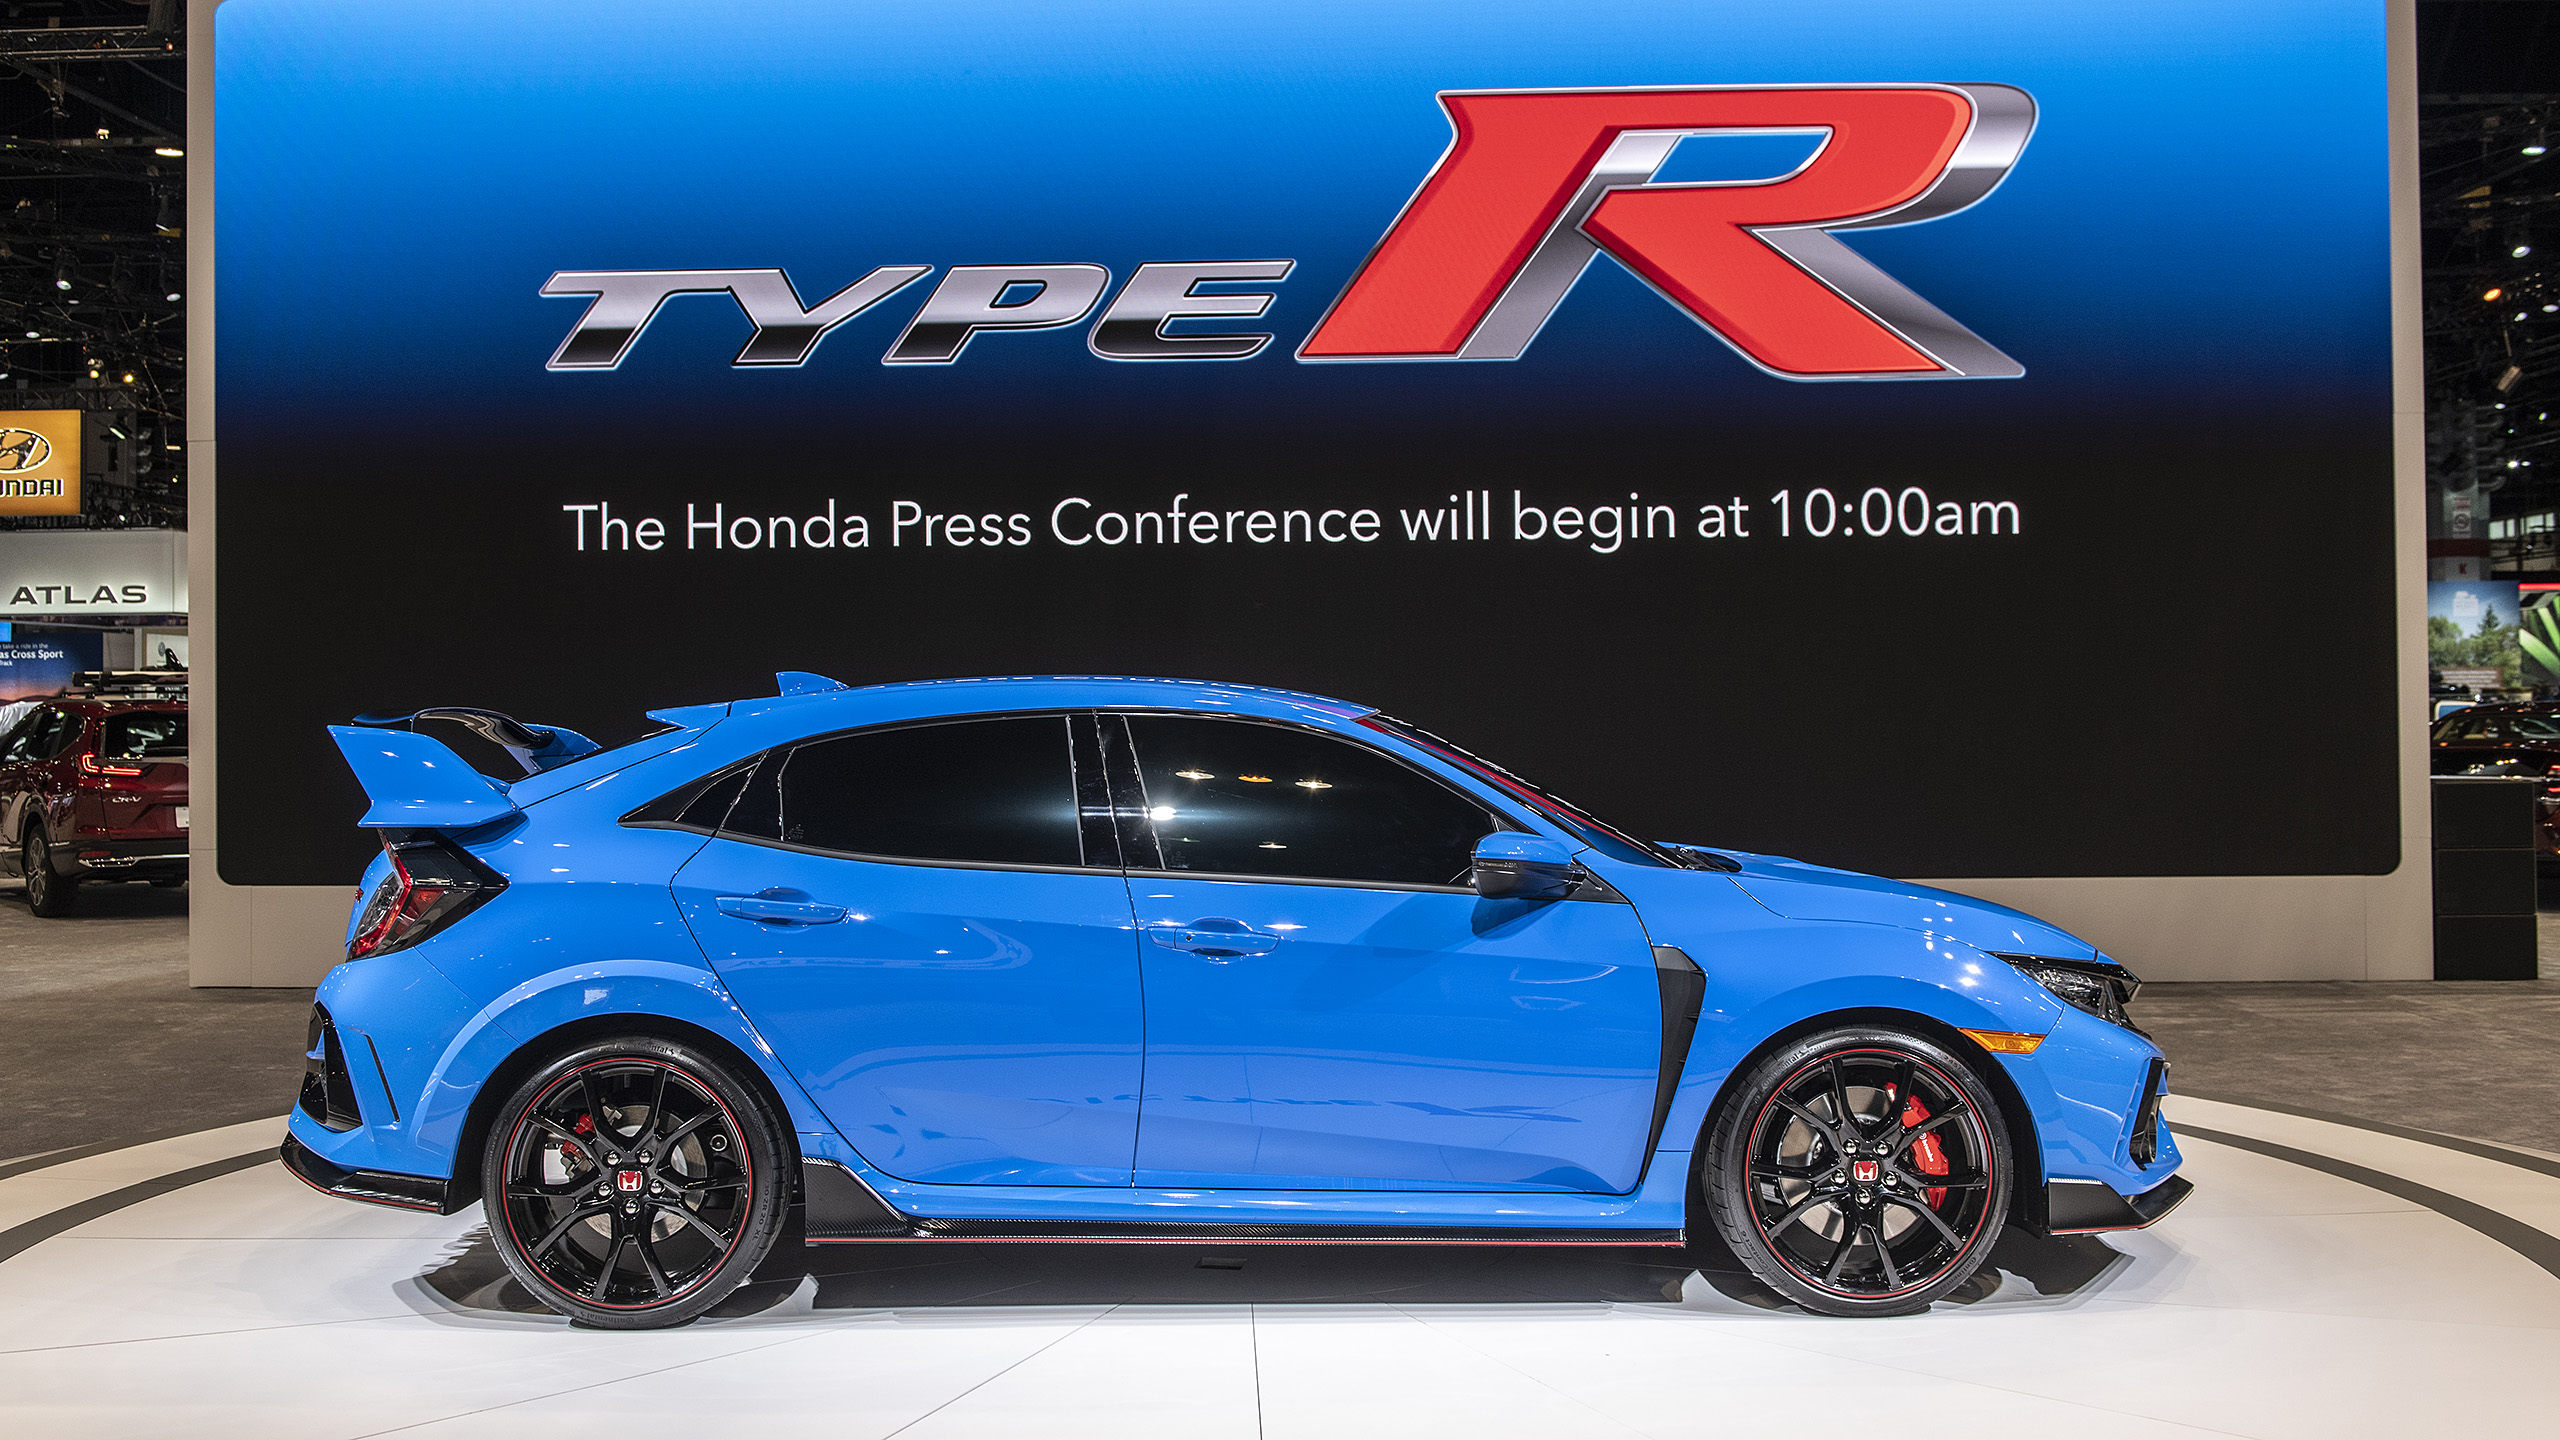 Gas Prices In Chicago >> 2020 Honda Civic Type R gets a performance upgrade: Here are the details | Autoblog